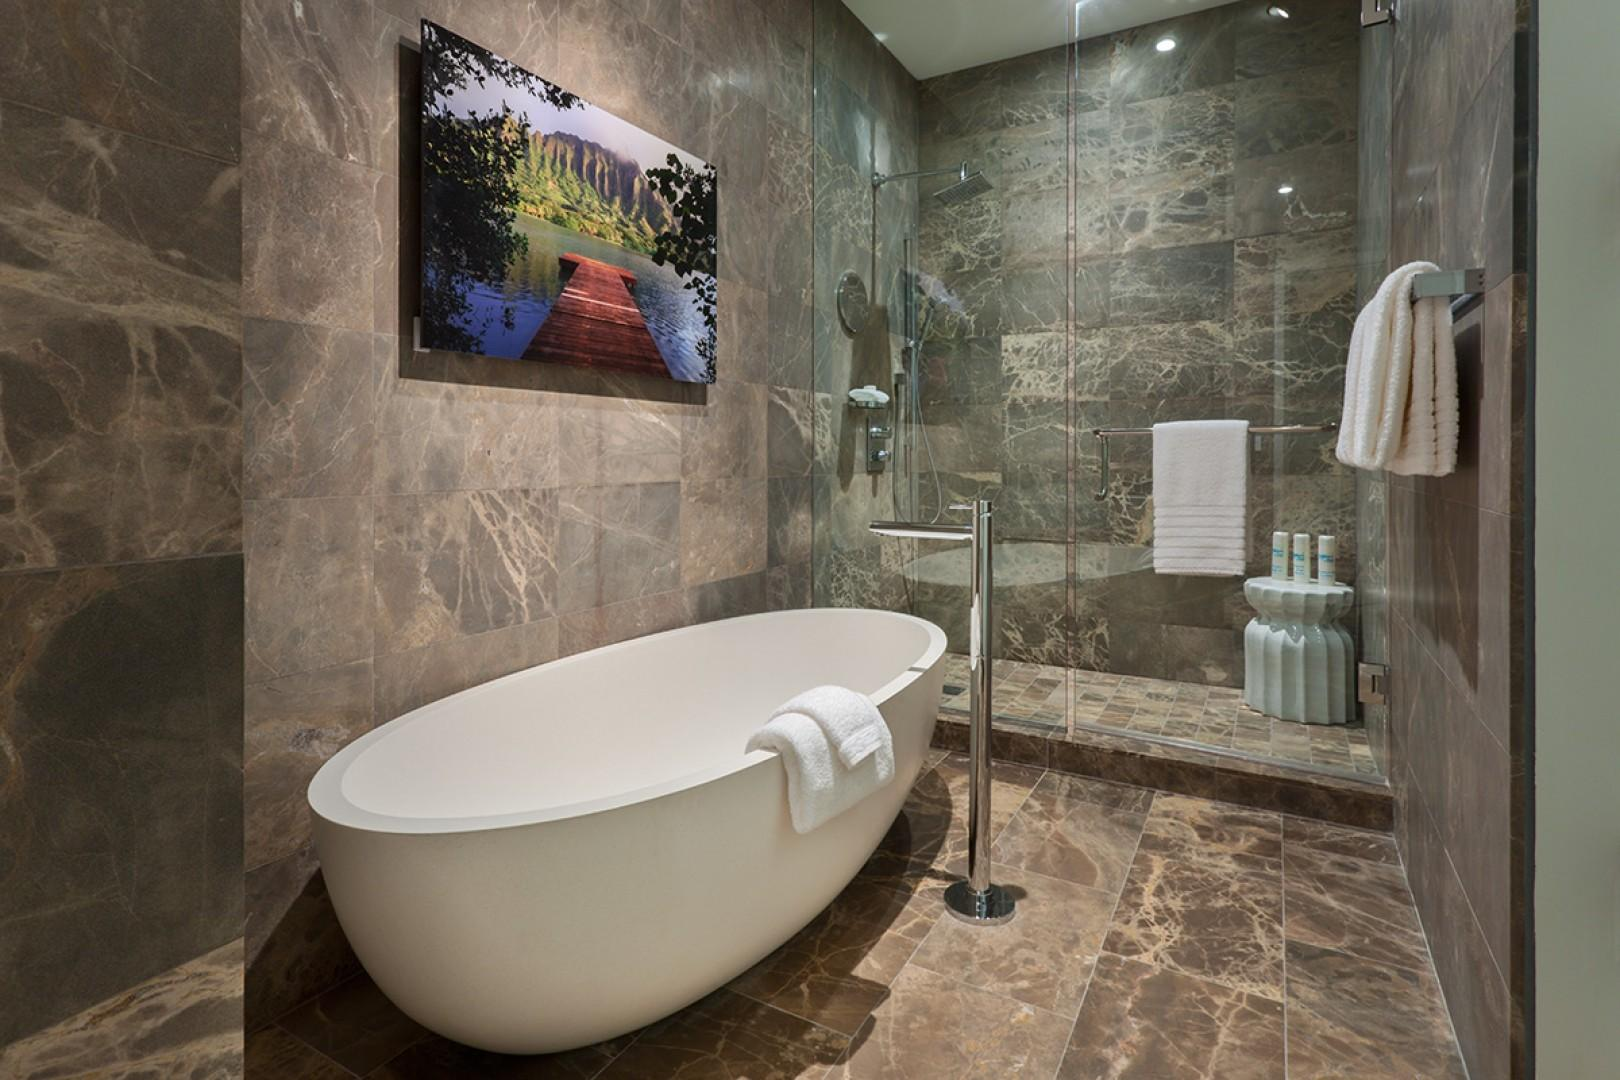 King Master Bedroom Bathroom with Free-Standing Deep Soak Tub